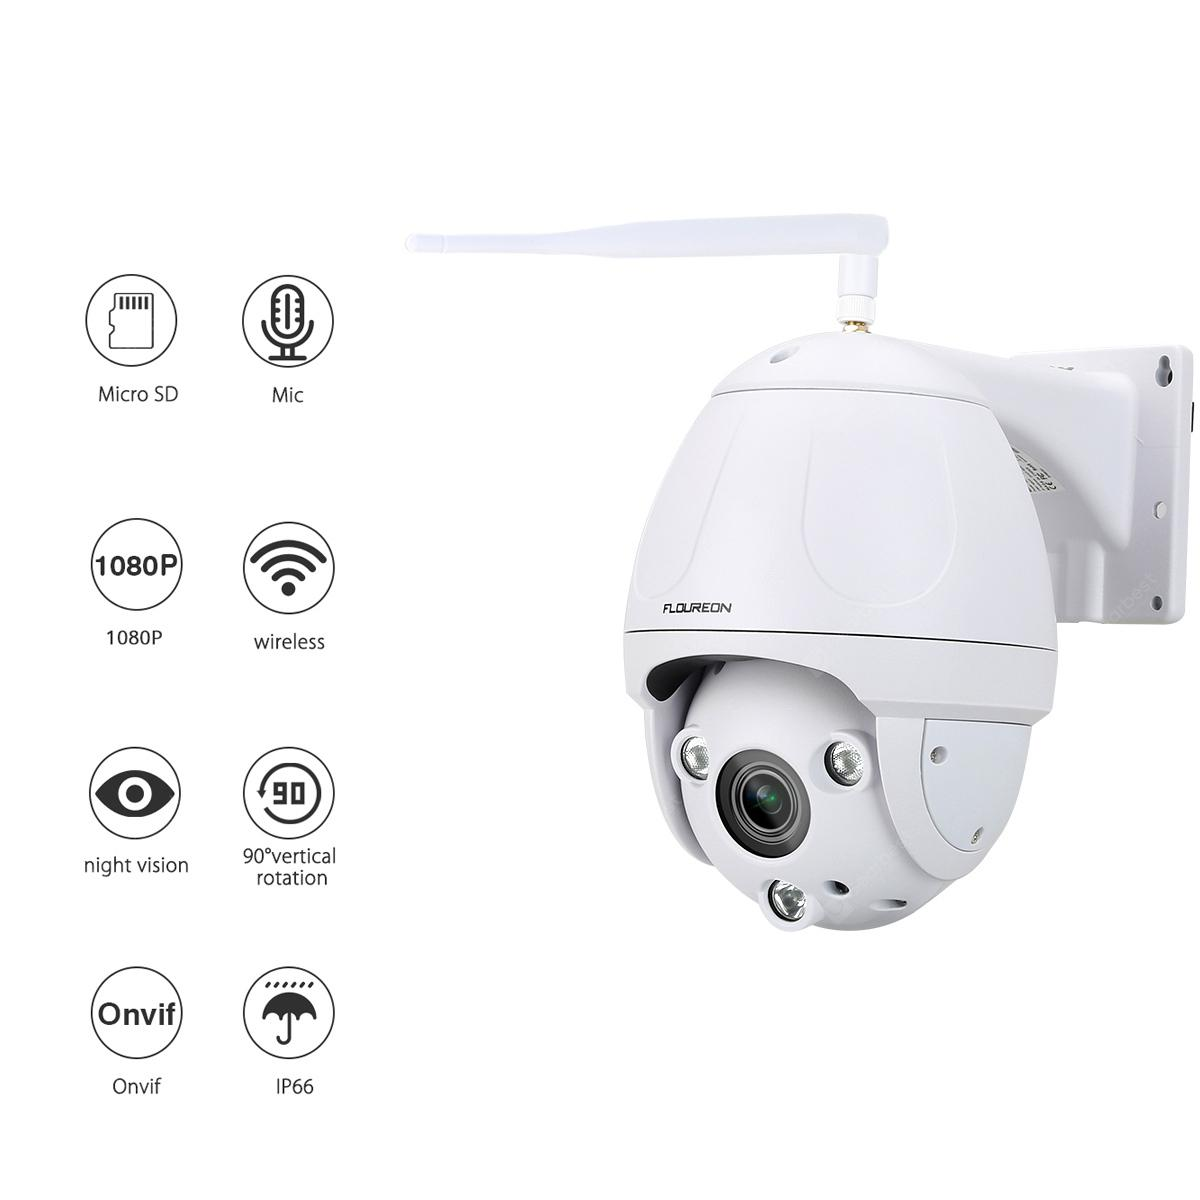 FLOUREON 1080P Wifi 2.7-13.5mm H.264 Wireless CCTV Security Pan/Tilt 5X ZOOM IR-CUT SD Card Slot PTZ Night Vision IP Camera EU - WHITE